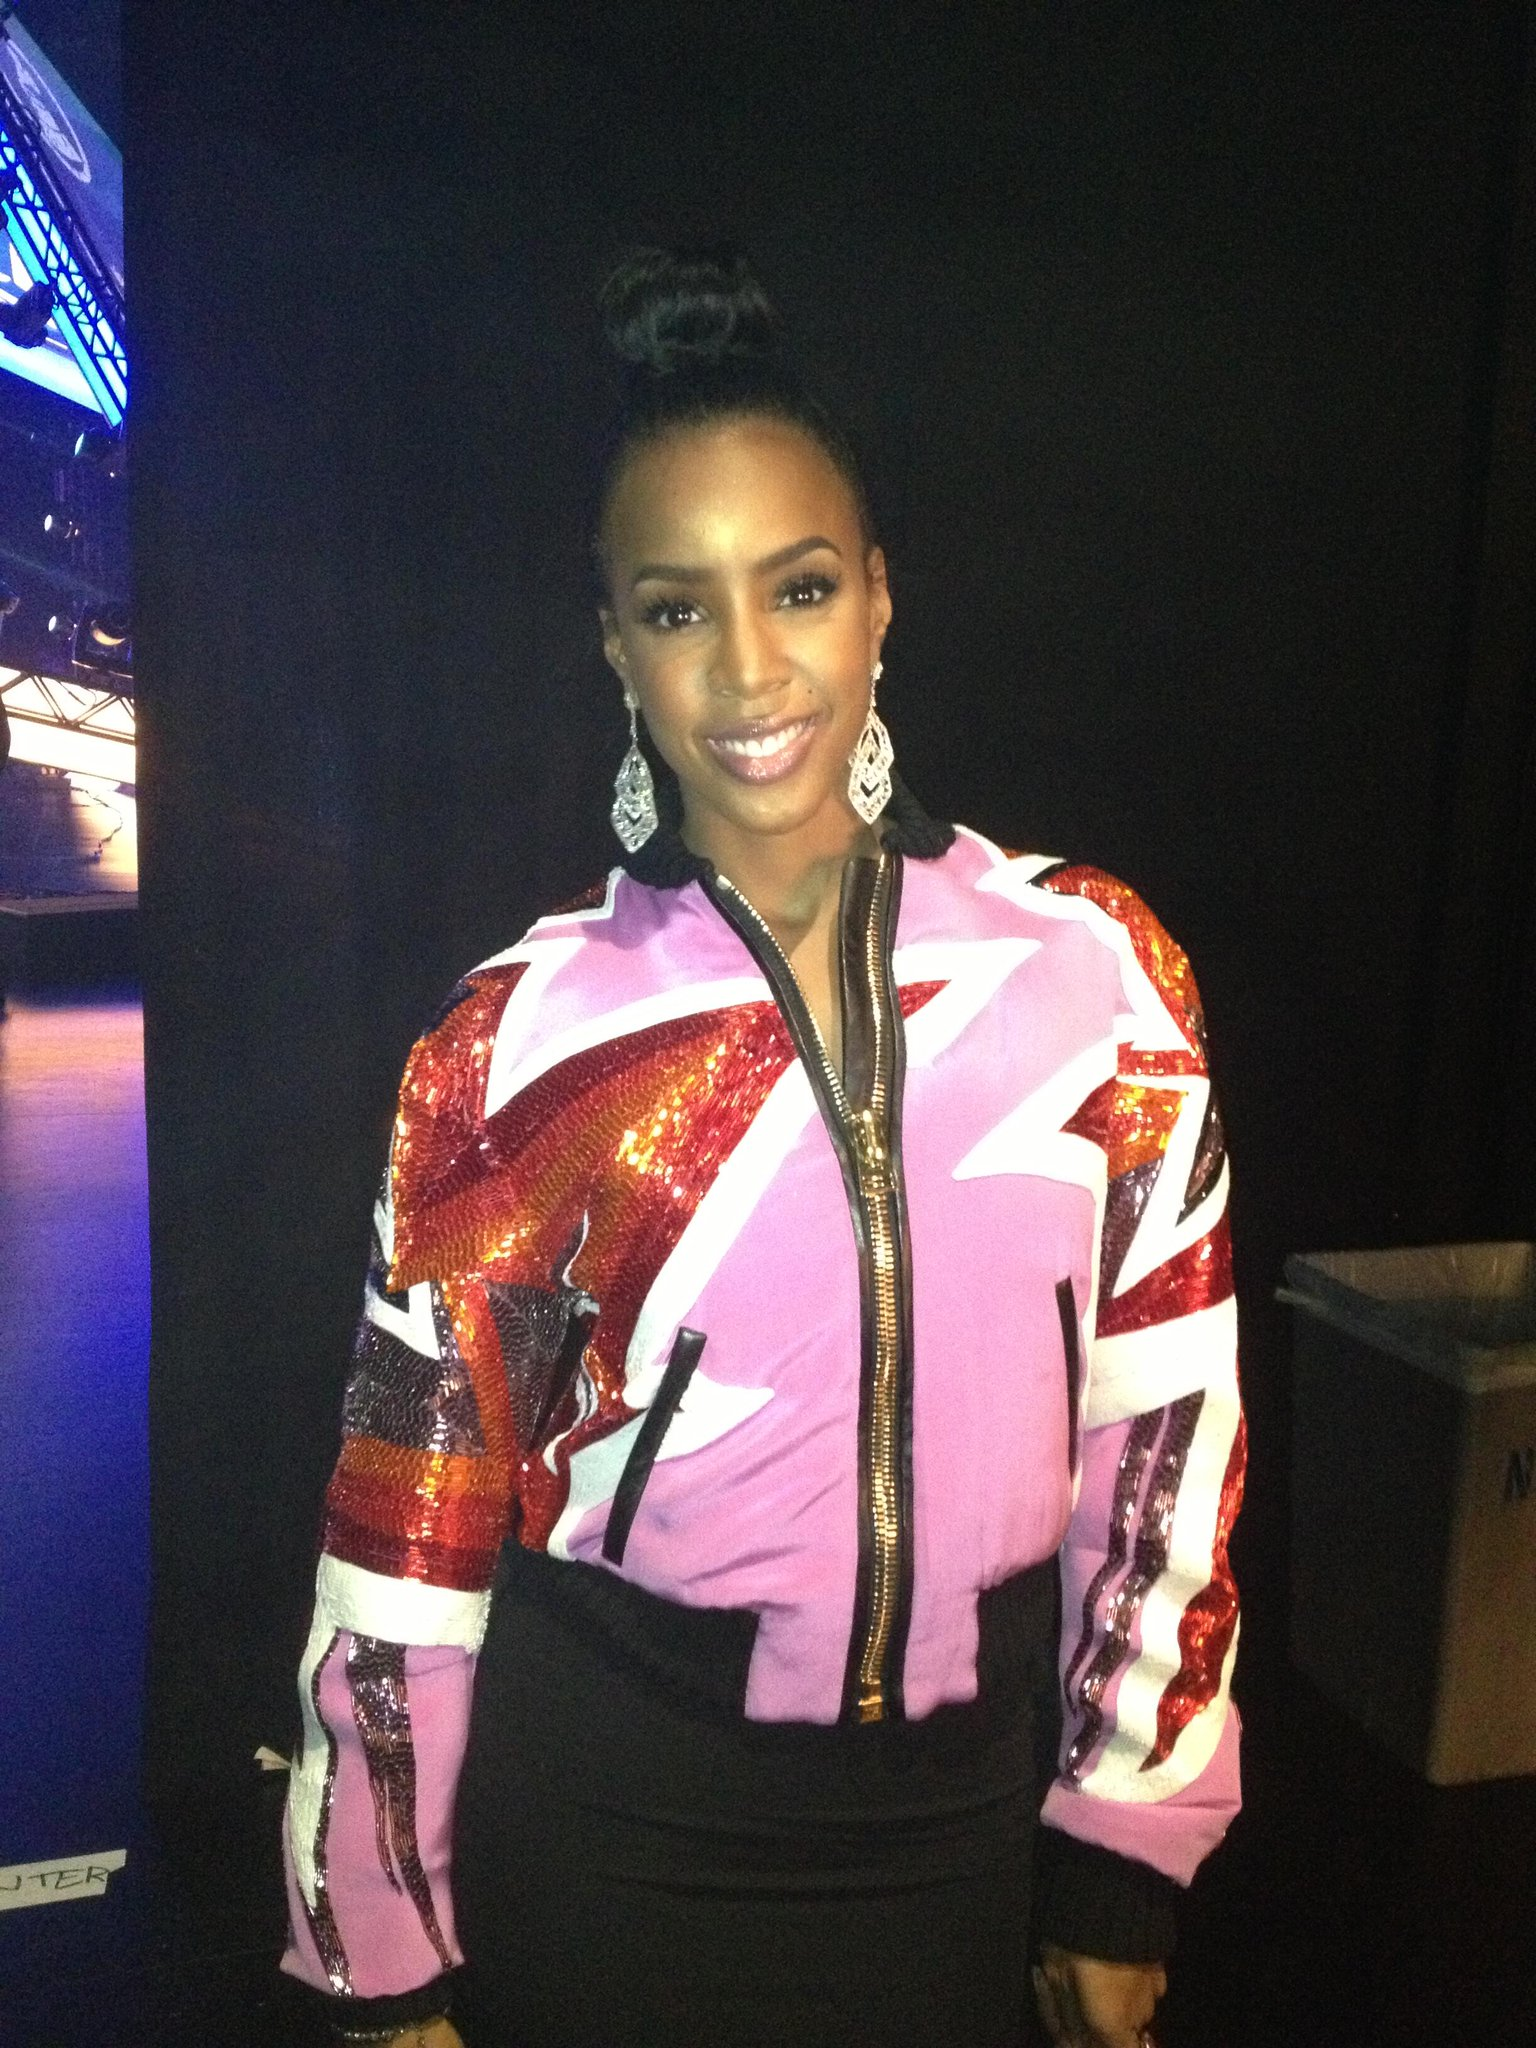 RT @CBSTweet: Presenter @KELLYROWLAND backstage ready to present at the #GRAMMYNoms!  http://t.co/1o5a24Sqp0